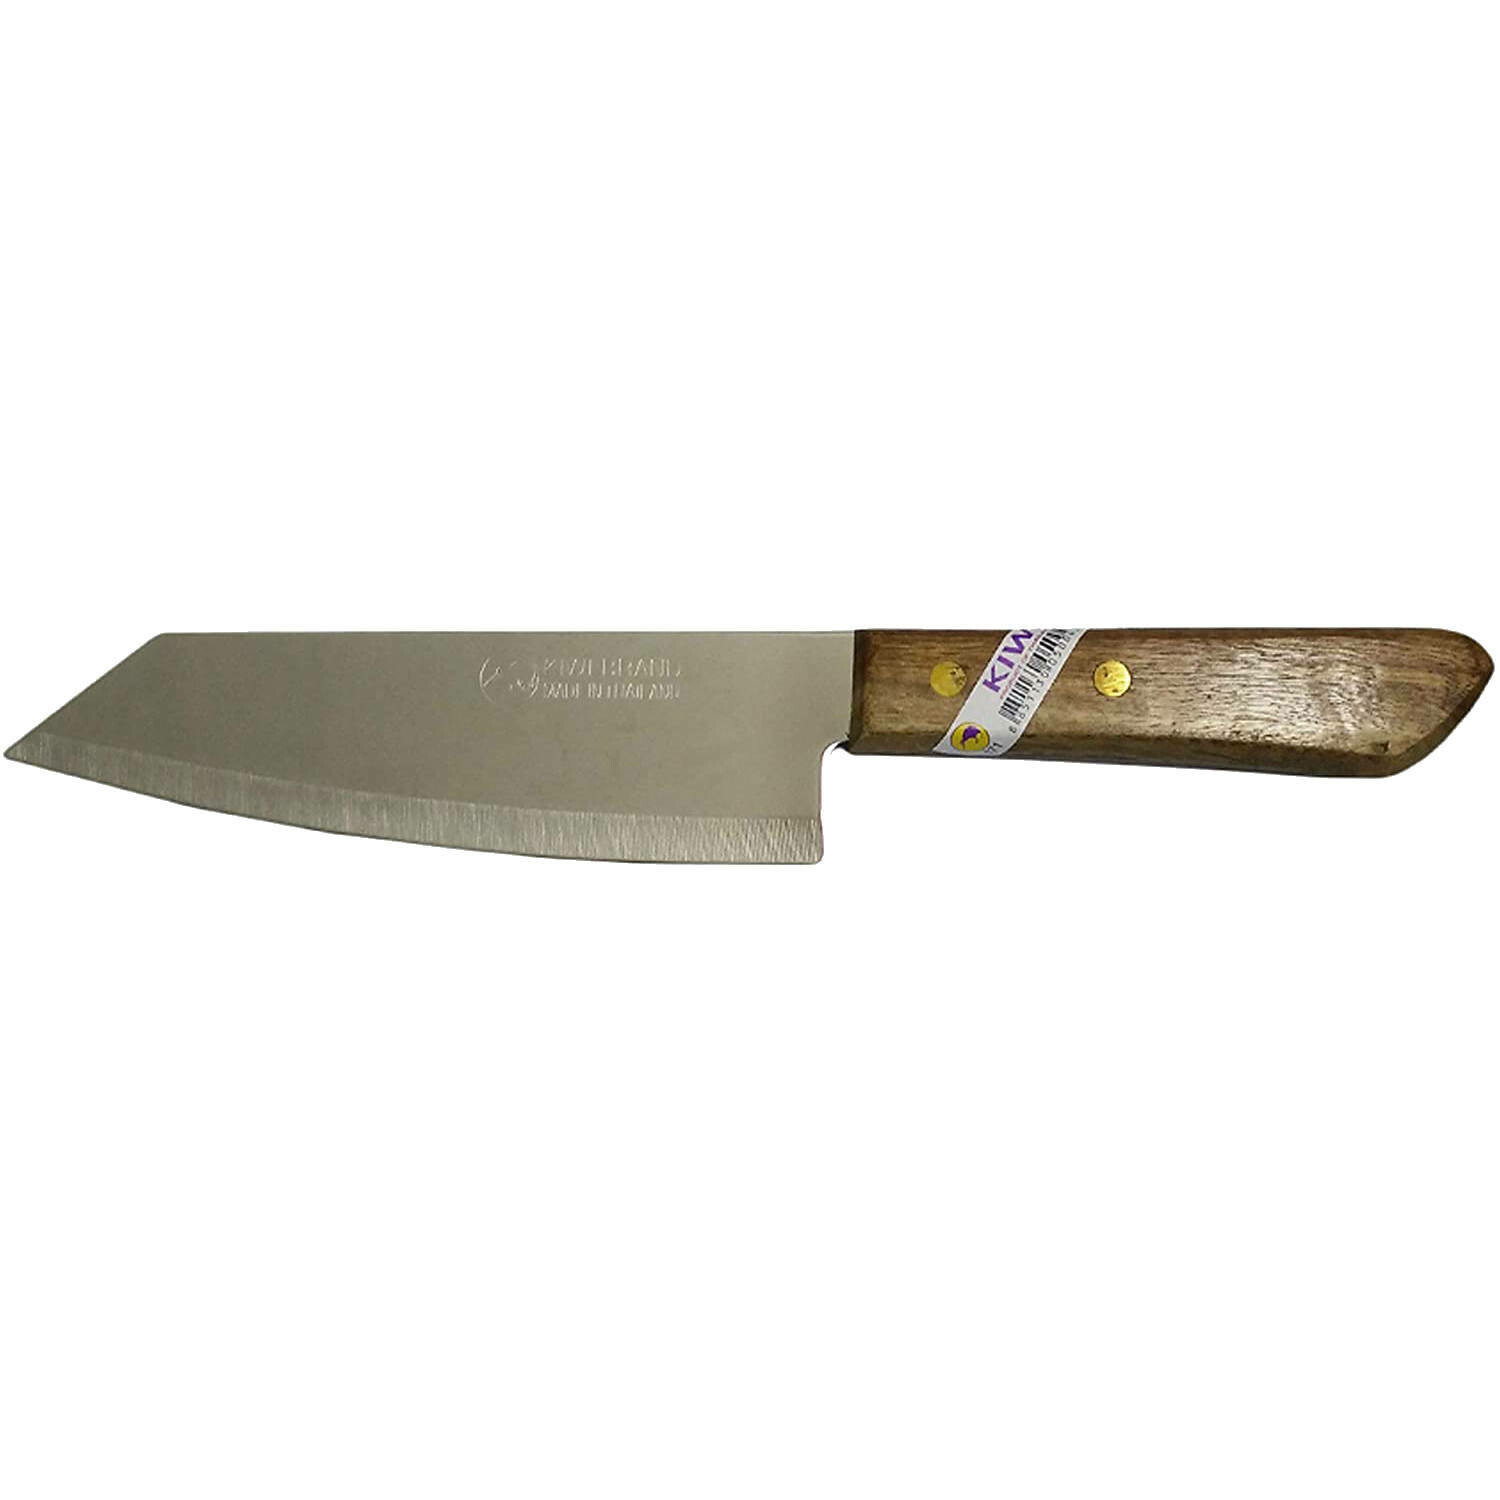 "11"" Knife with sharp point and wood handle"